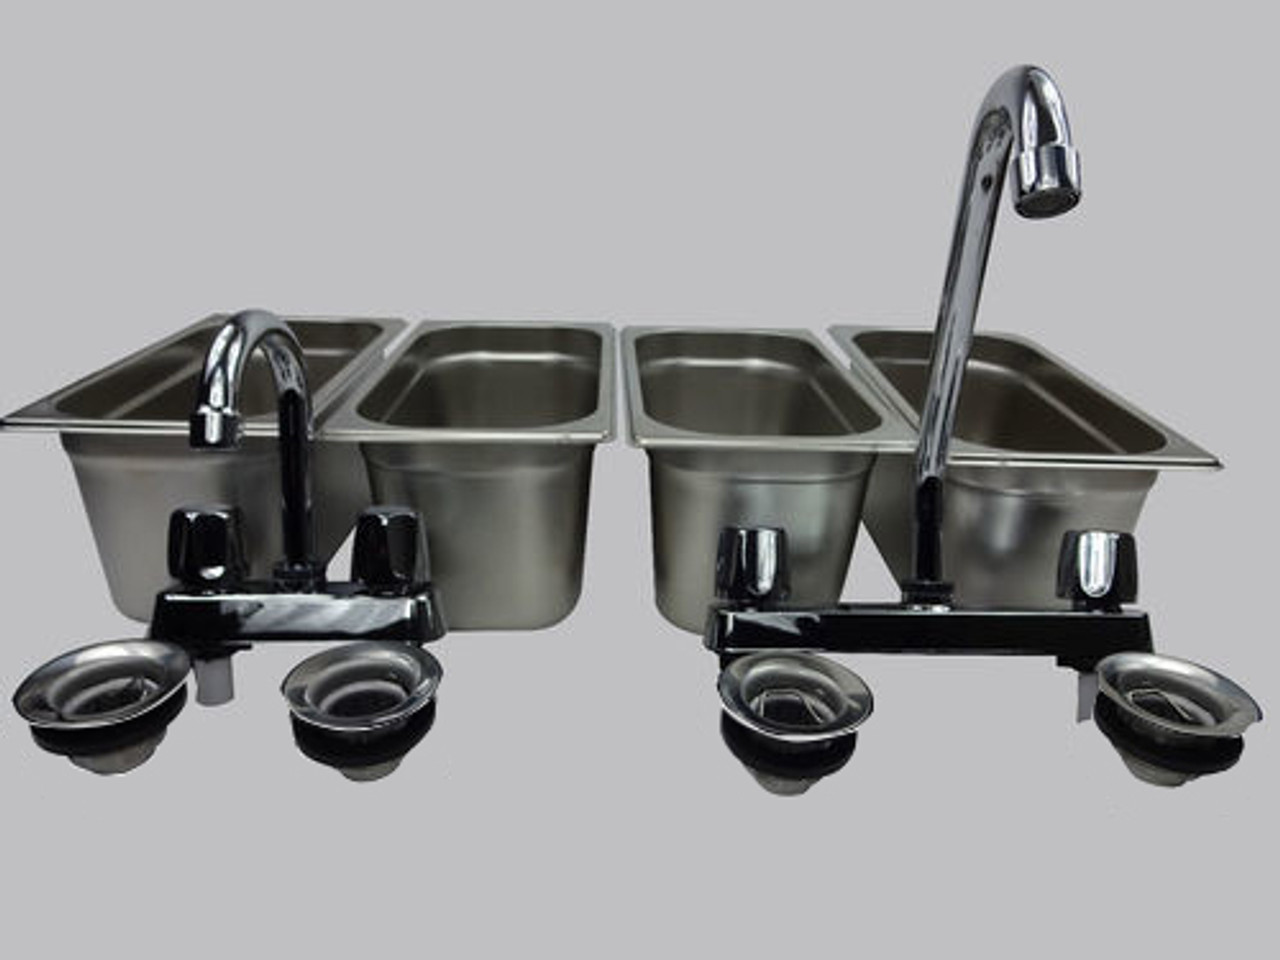 4 Compartment Concession Sink Portable 4 Traps Hand Washing Food Truck Trailer